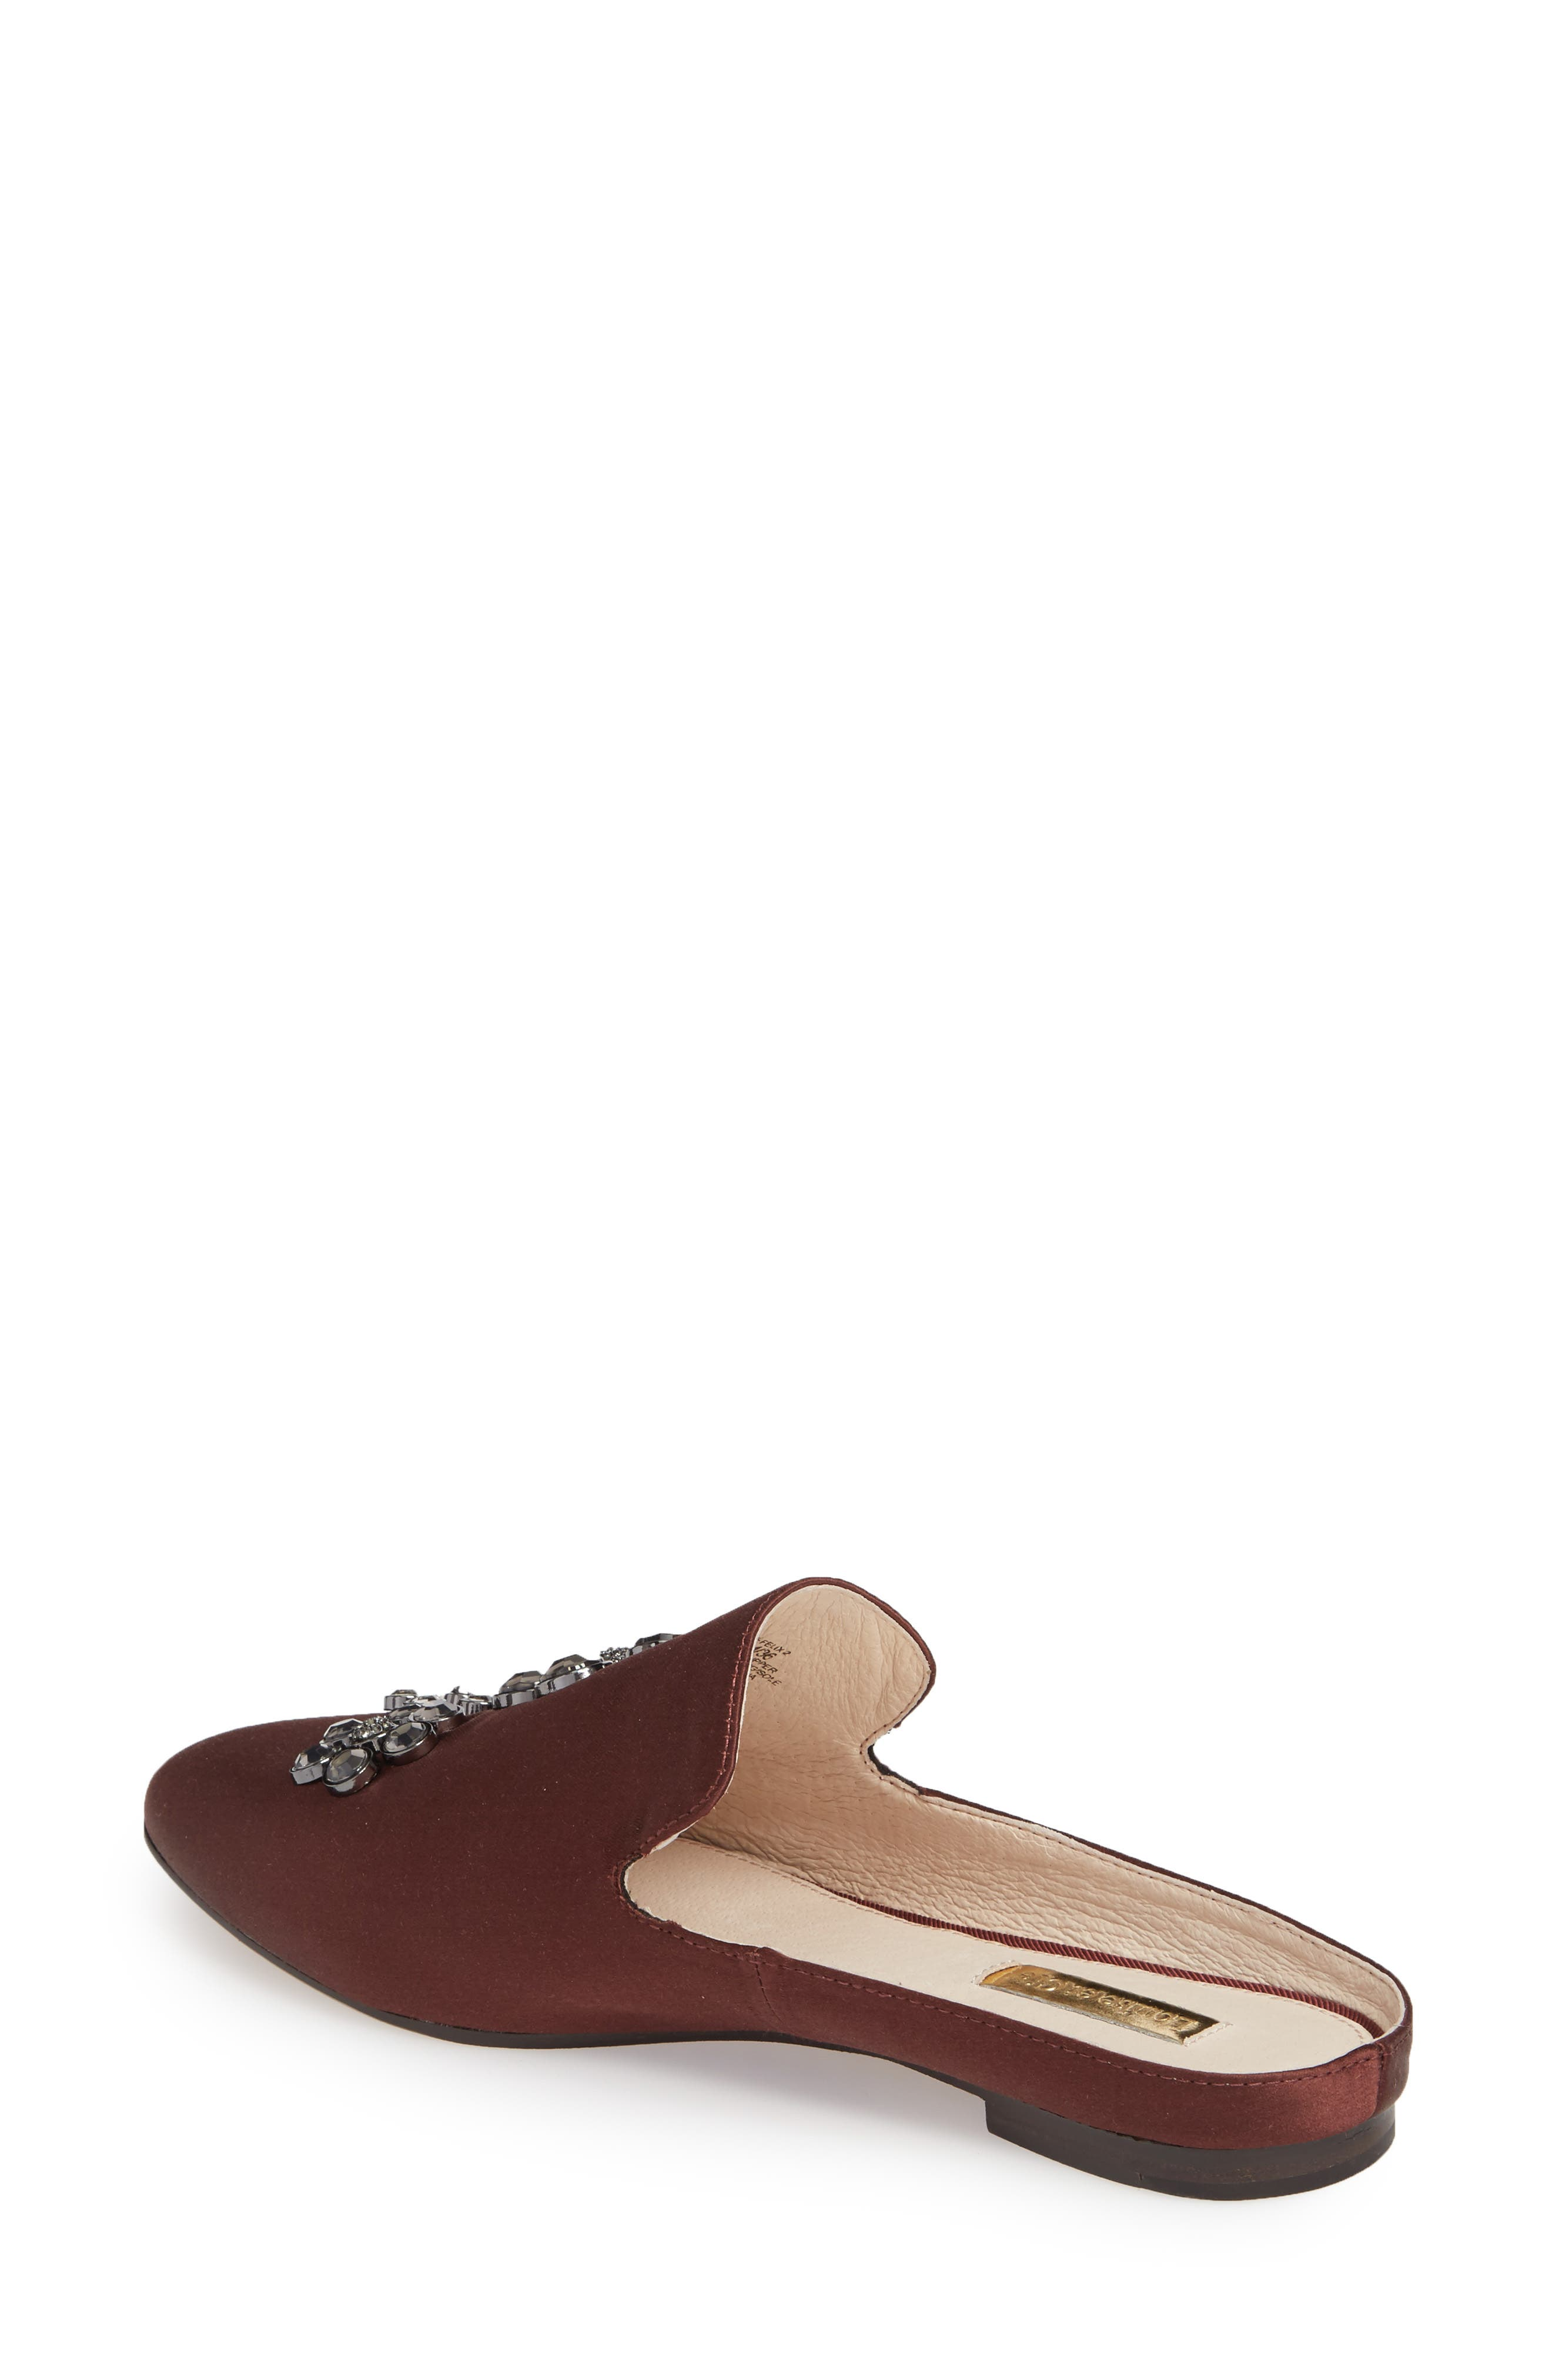 Felix II Crystal Flower Loafer Mule,                             Alternate thumbnail 7, color,